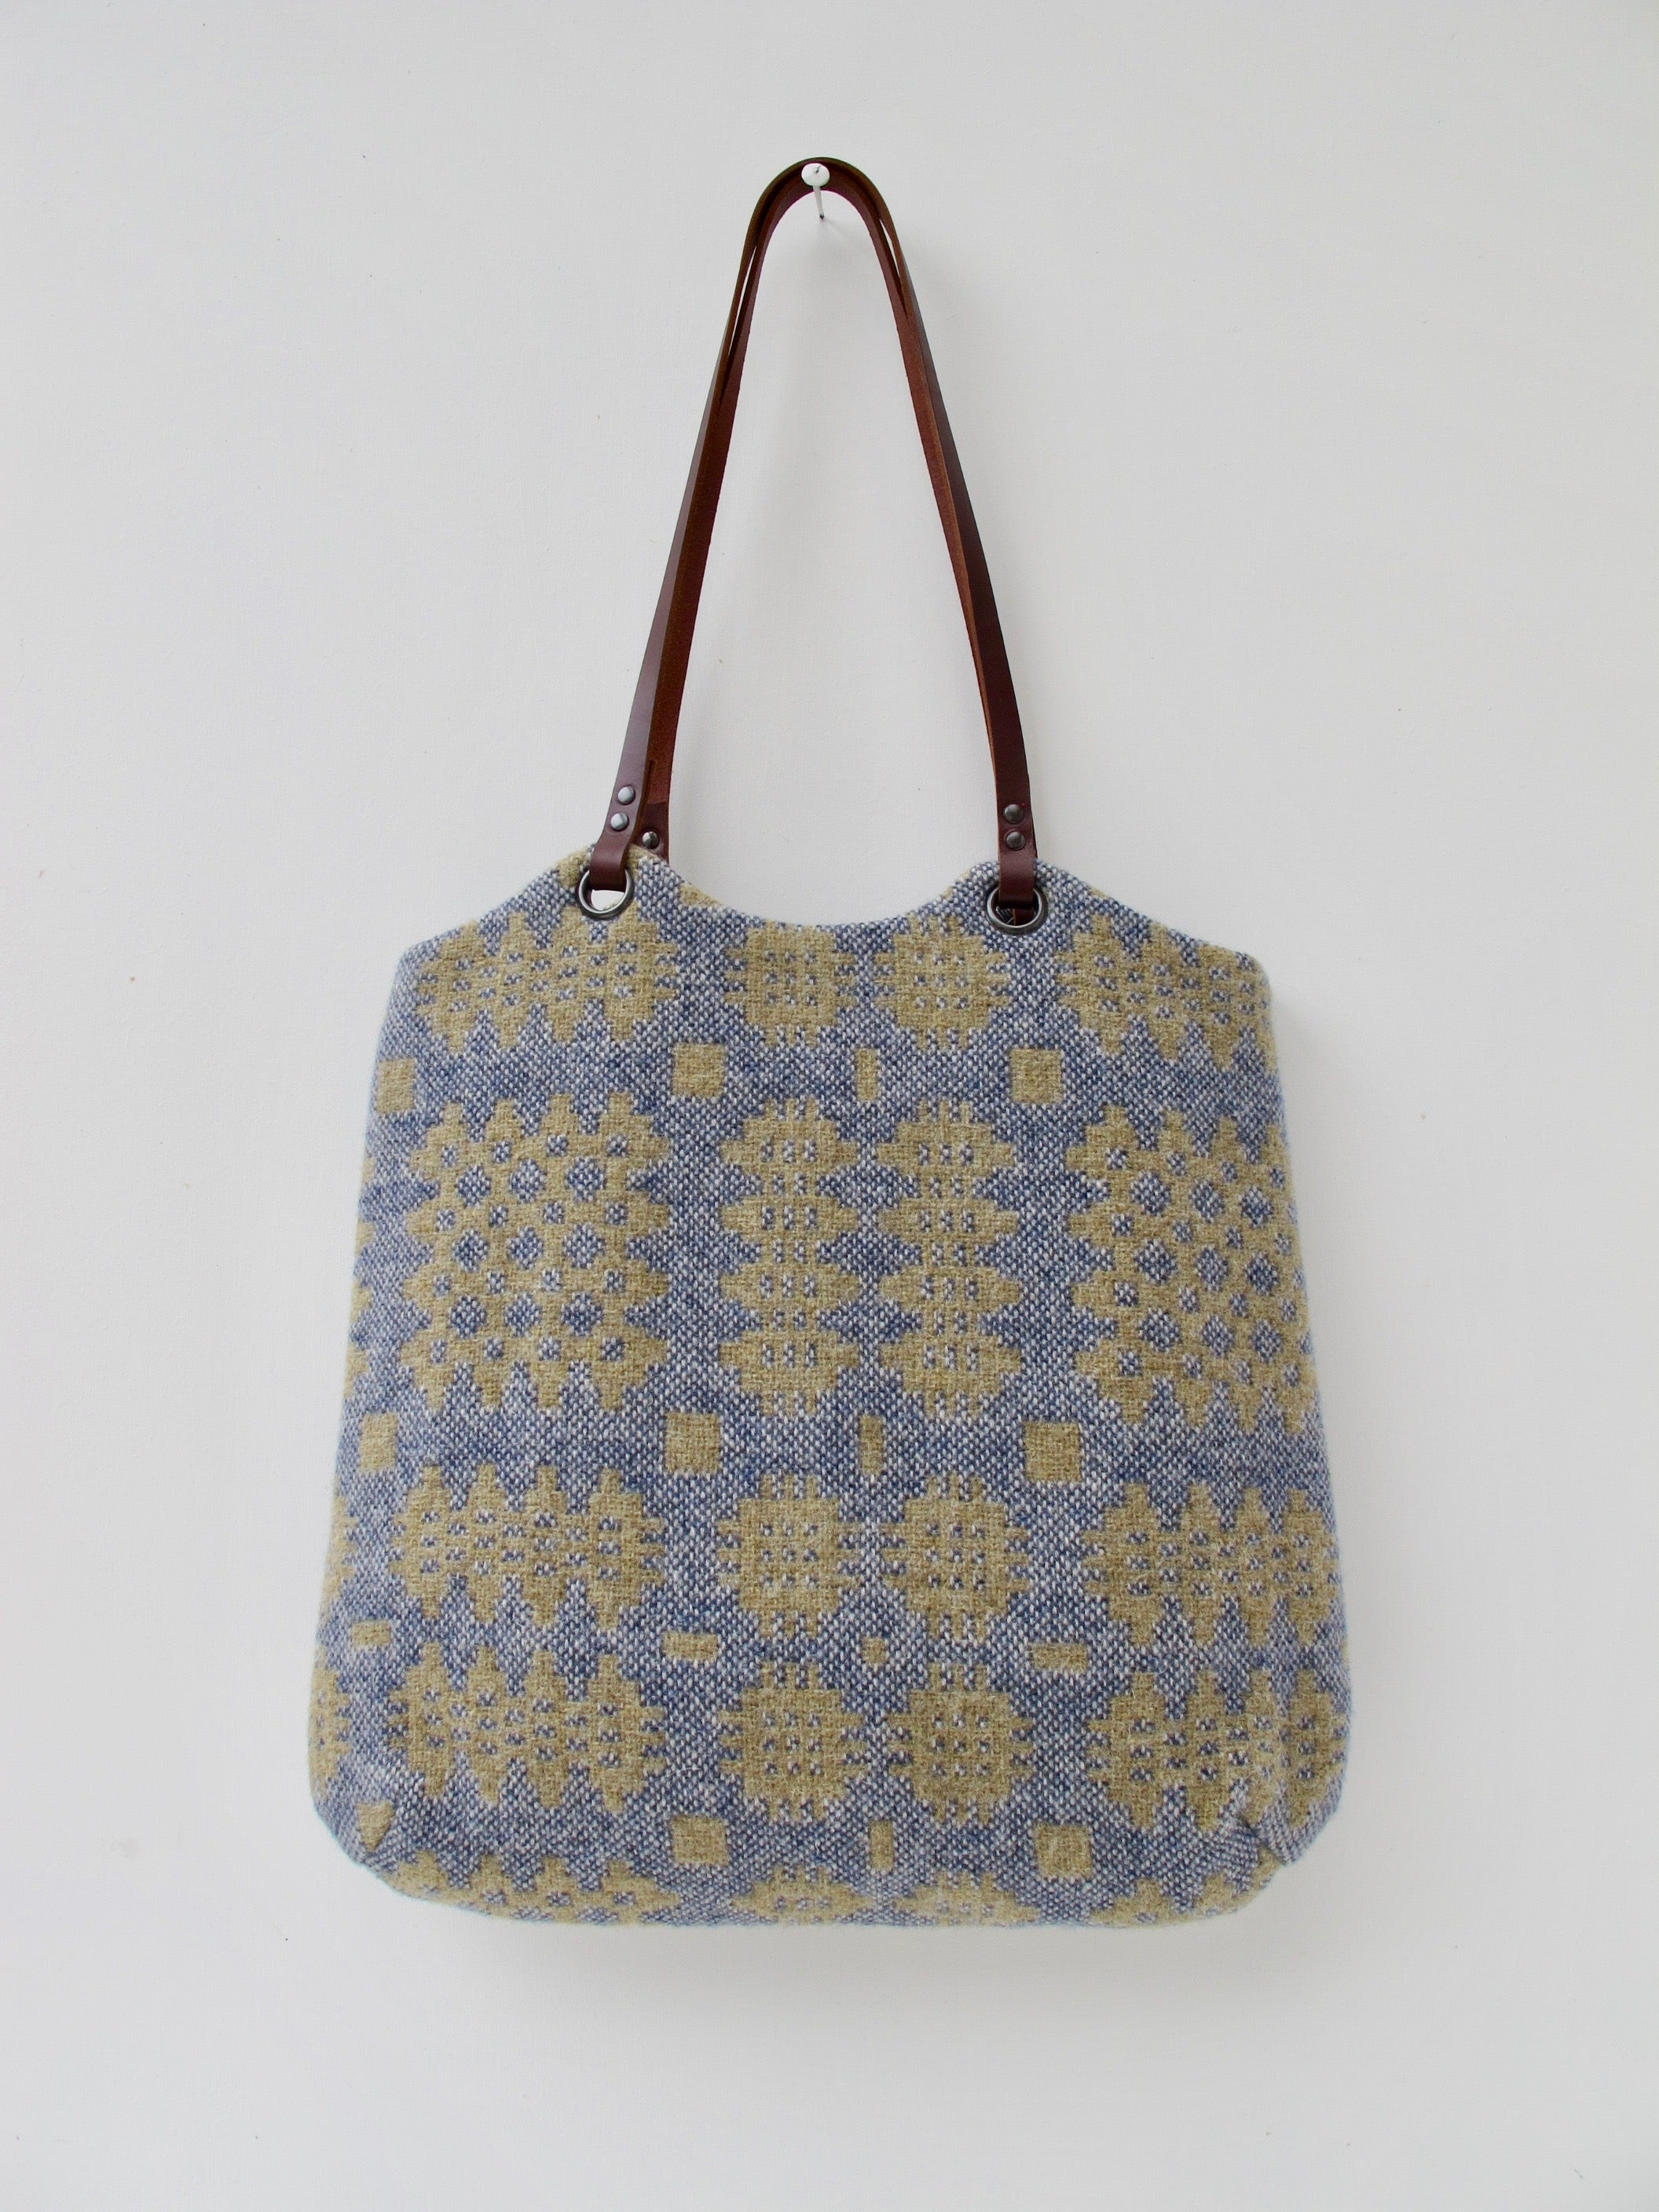 NEW Tapestry Tote - Sand & Denim II